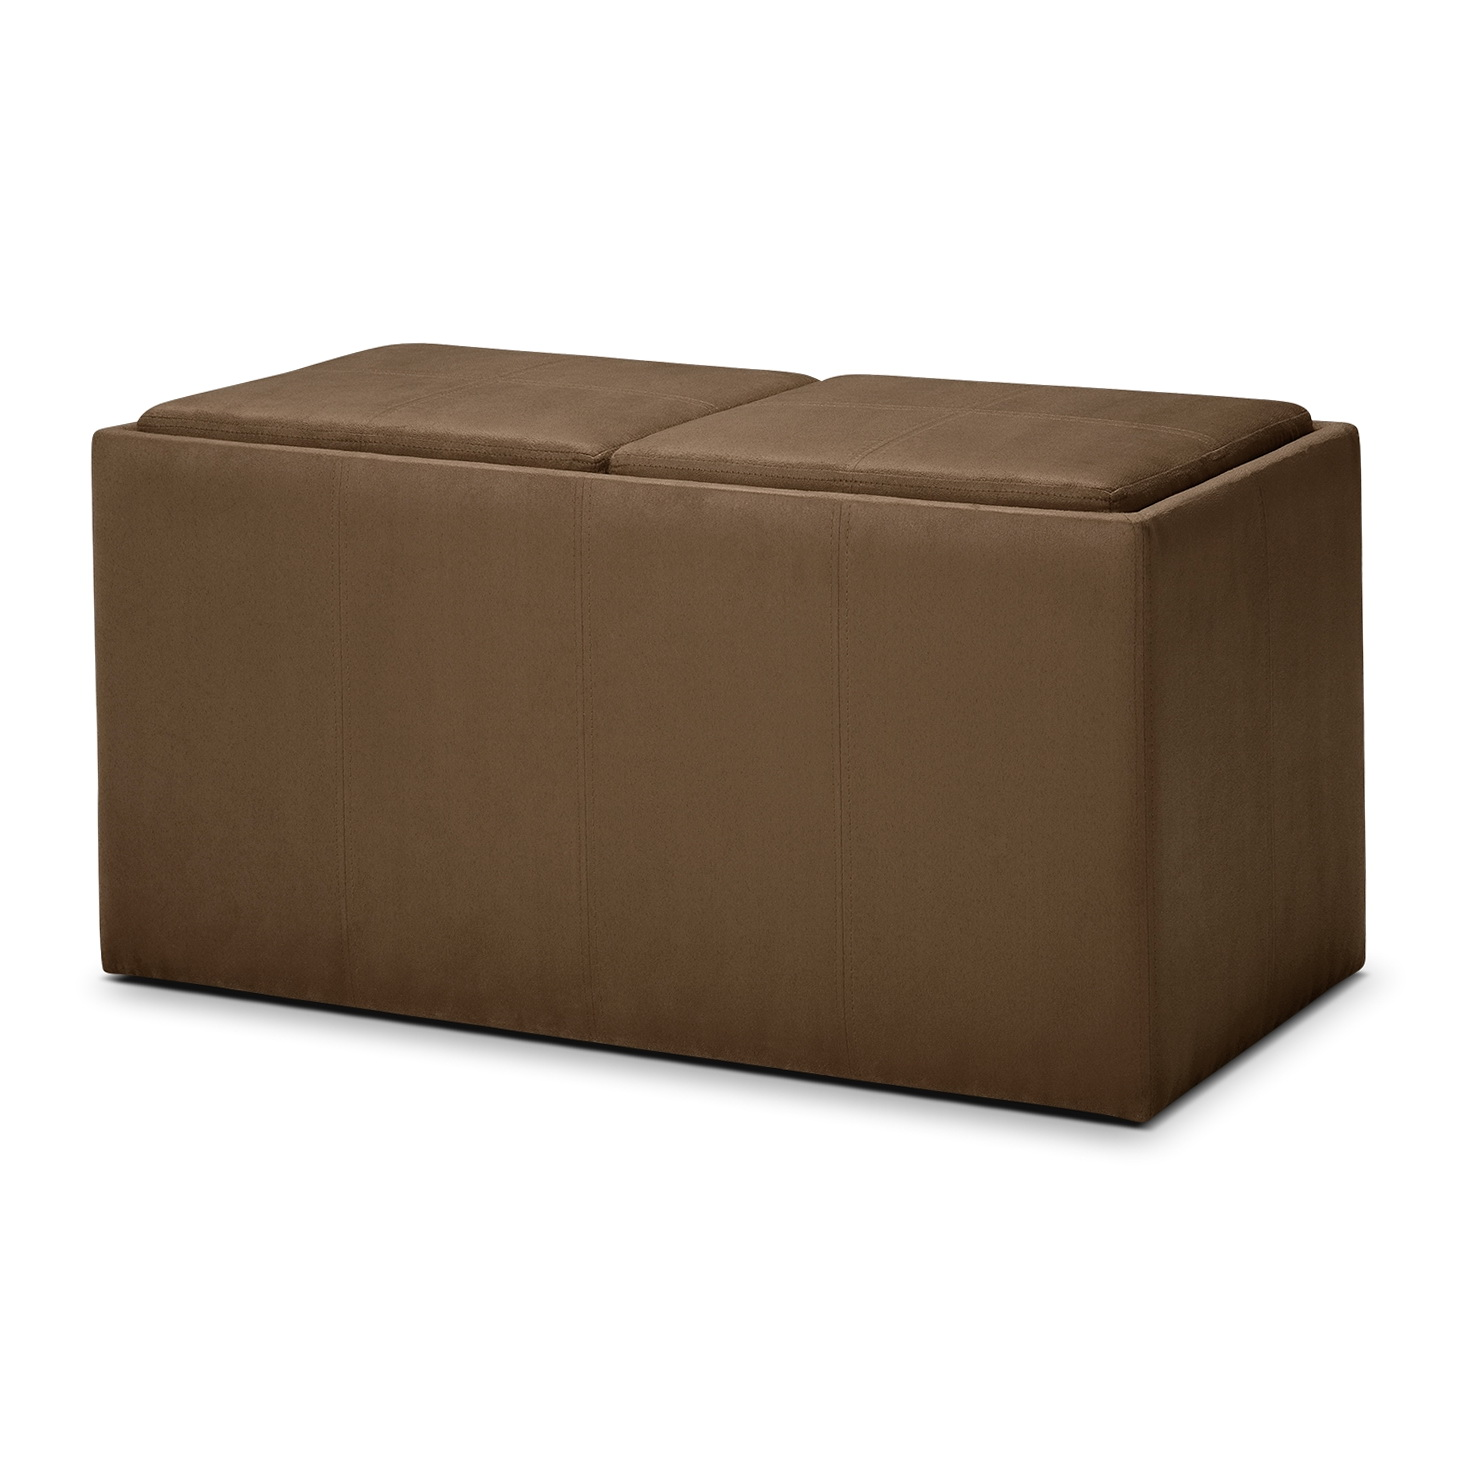 Fabric storage ottoman with tray home design ideas for Storage ottomans fabric